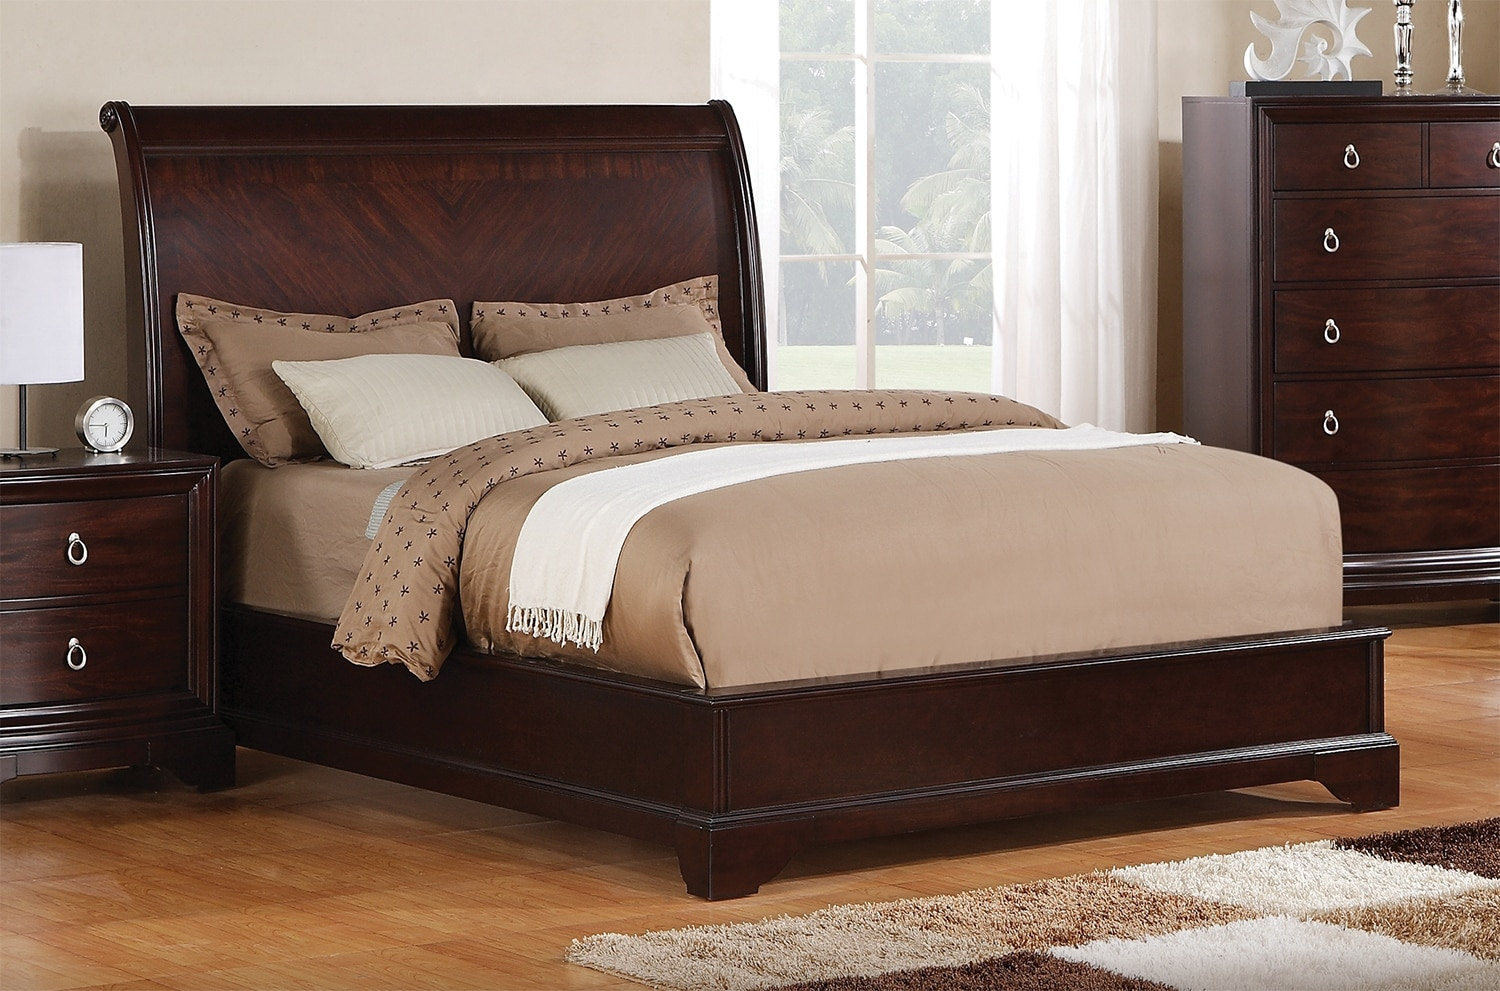 bedroom furniture noah king bed dark cherry